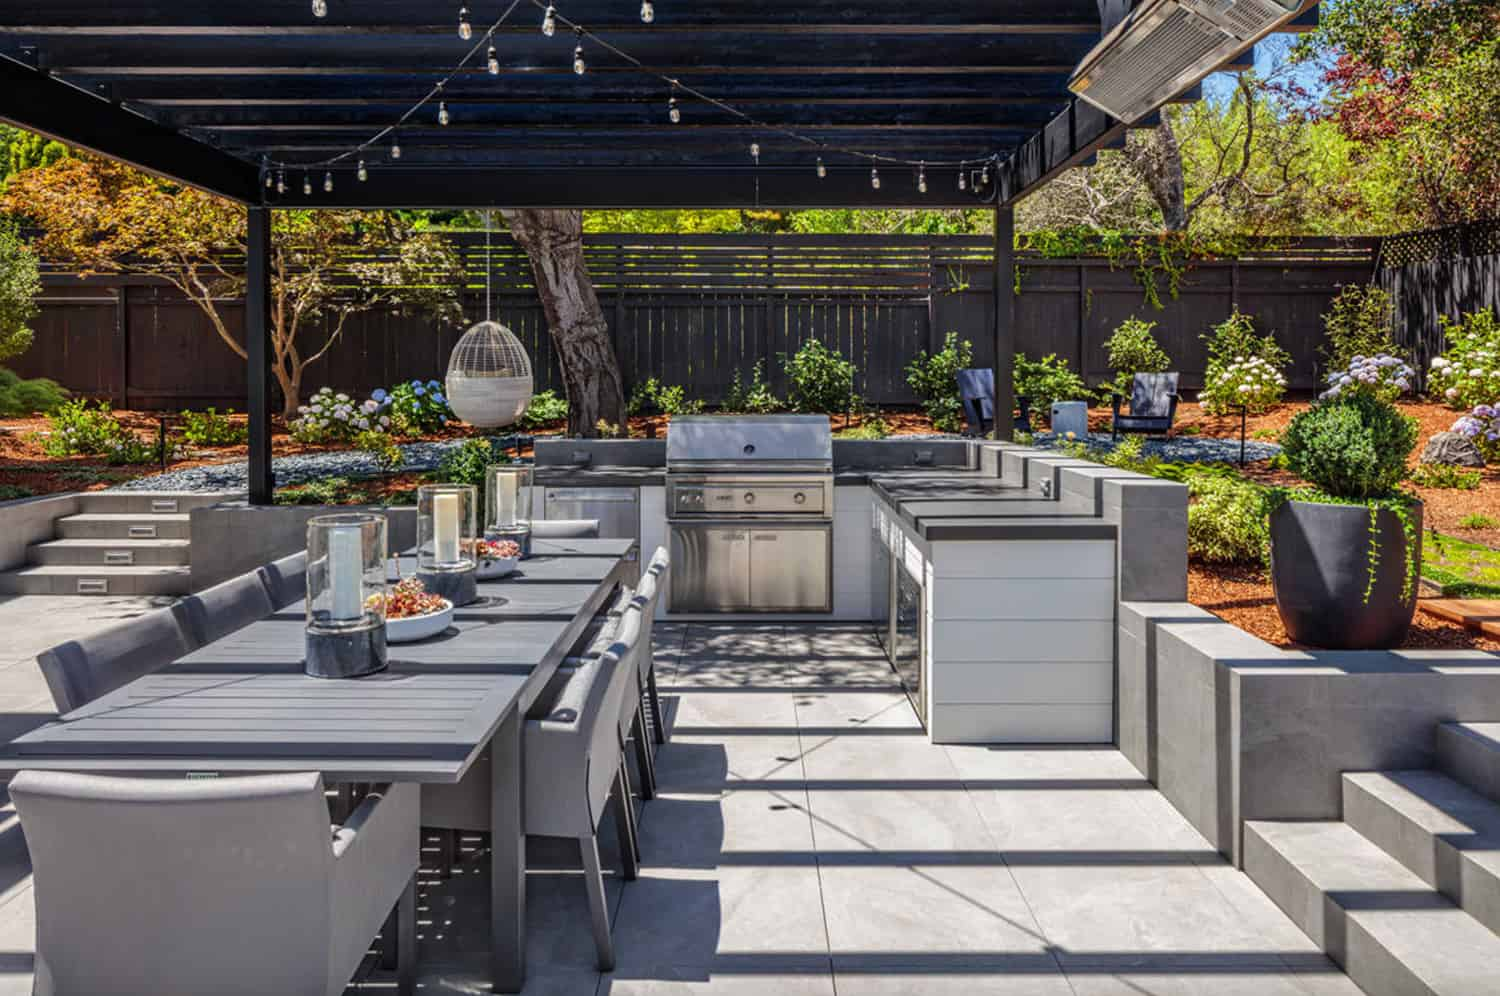 traditional-home-patio-with-outdoor-dining-table-built-in-grill-kitchen-and-pergola